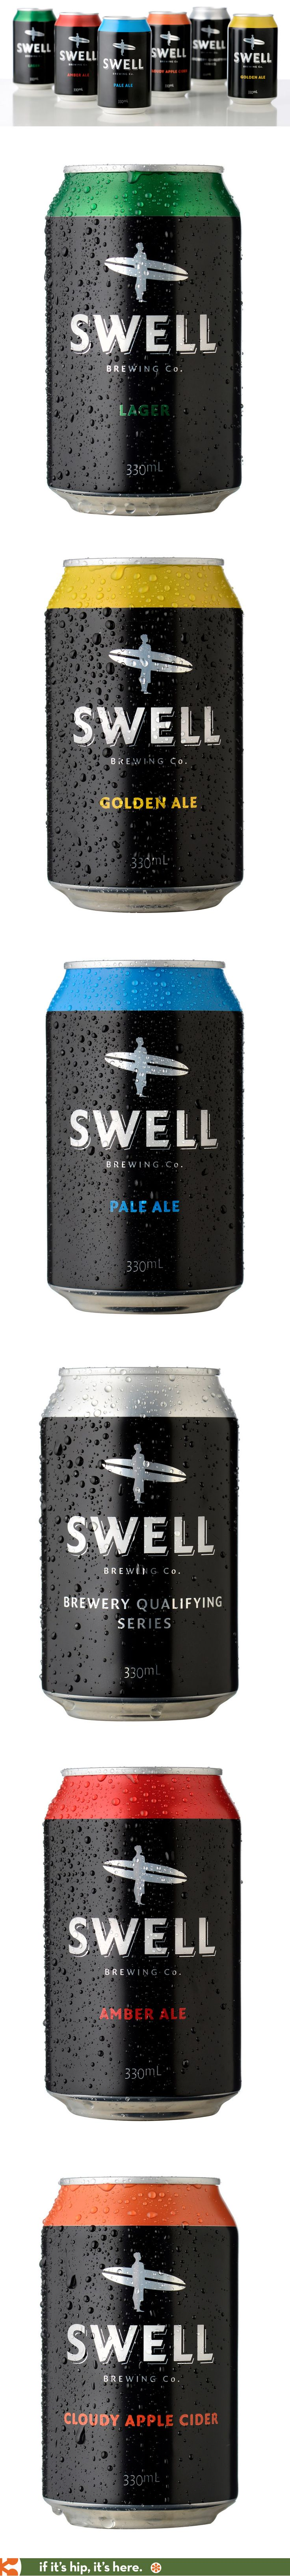 I absolutely love the look of Australia's Swell Brewing Company beer cans and branding.